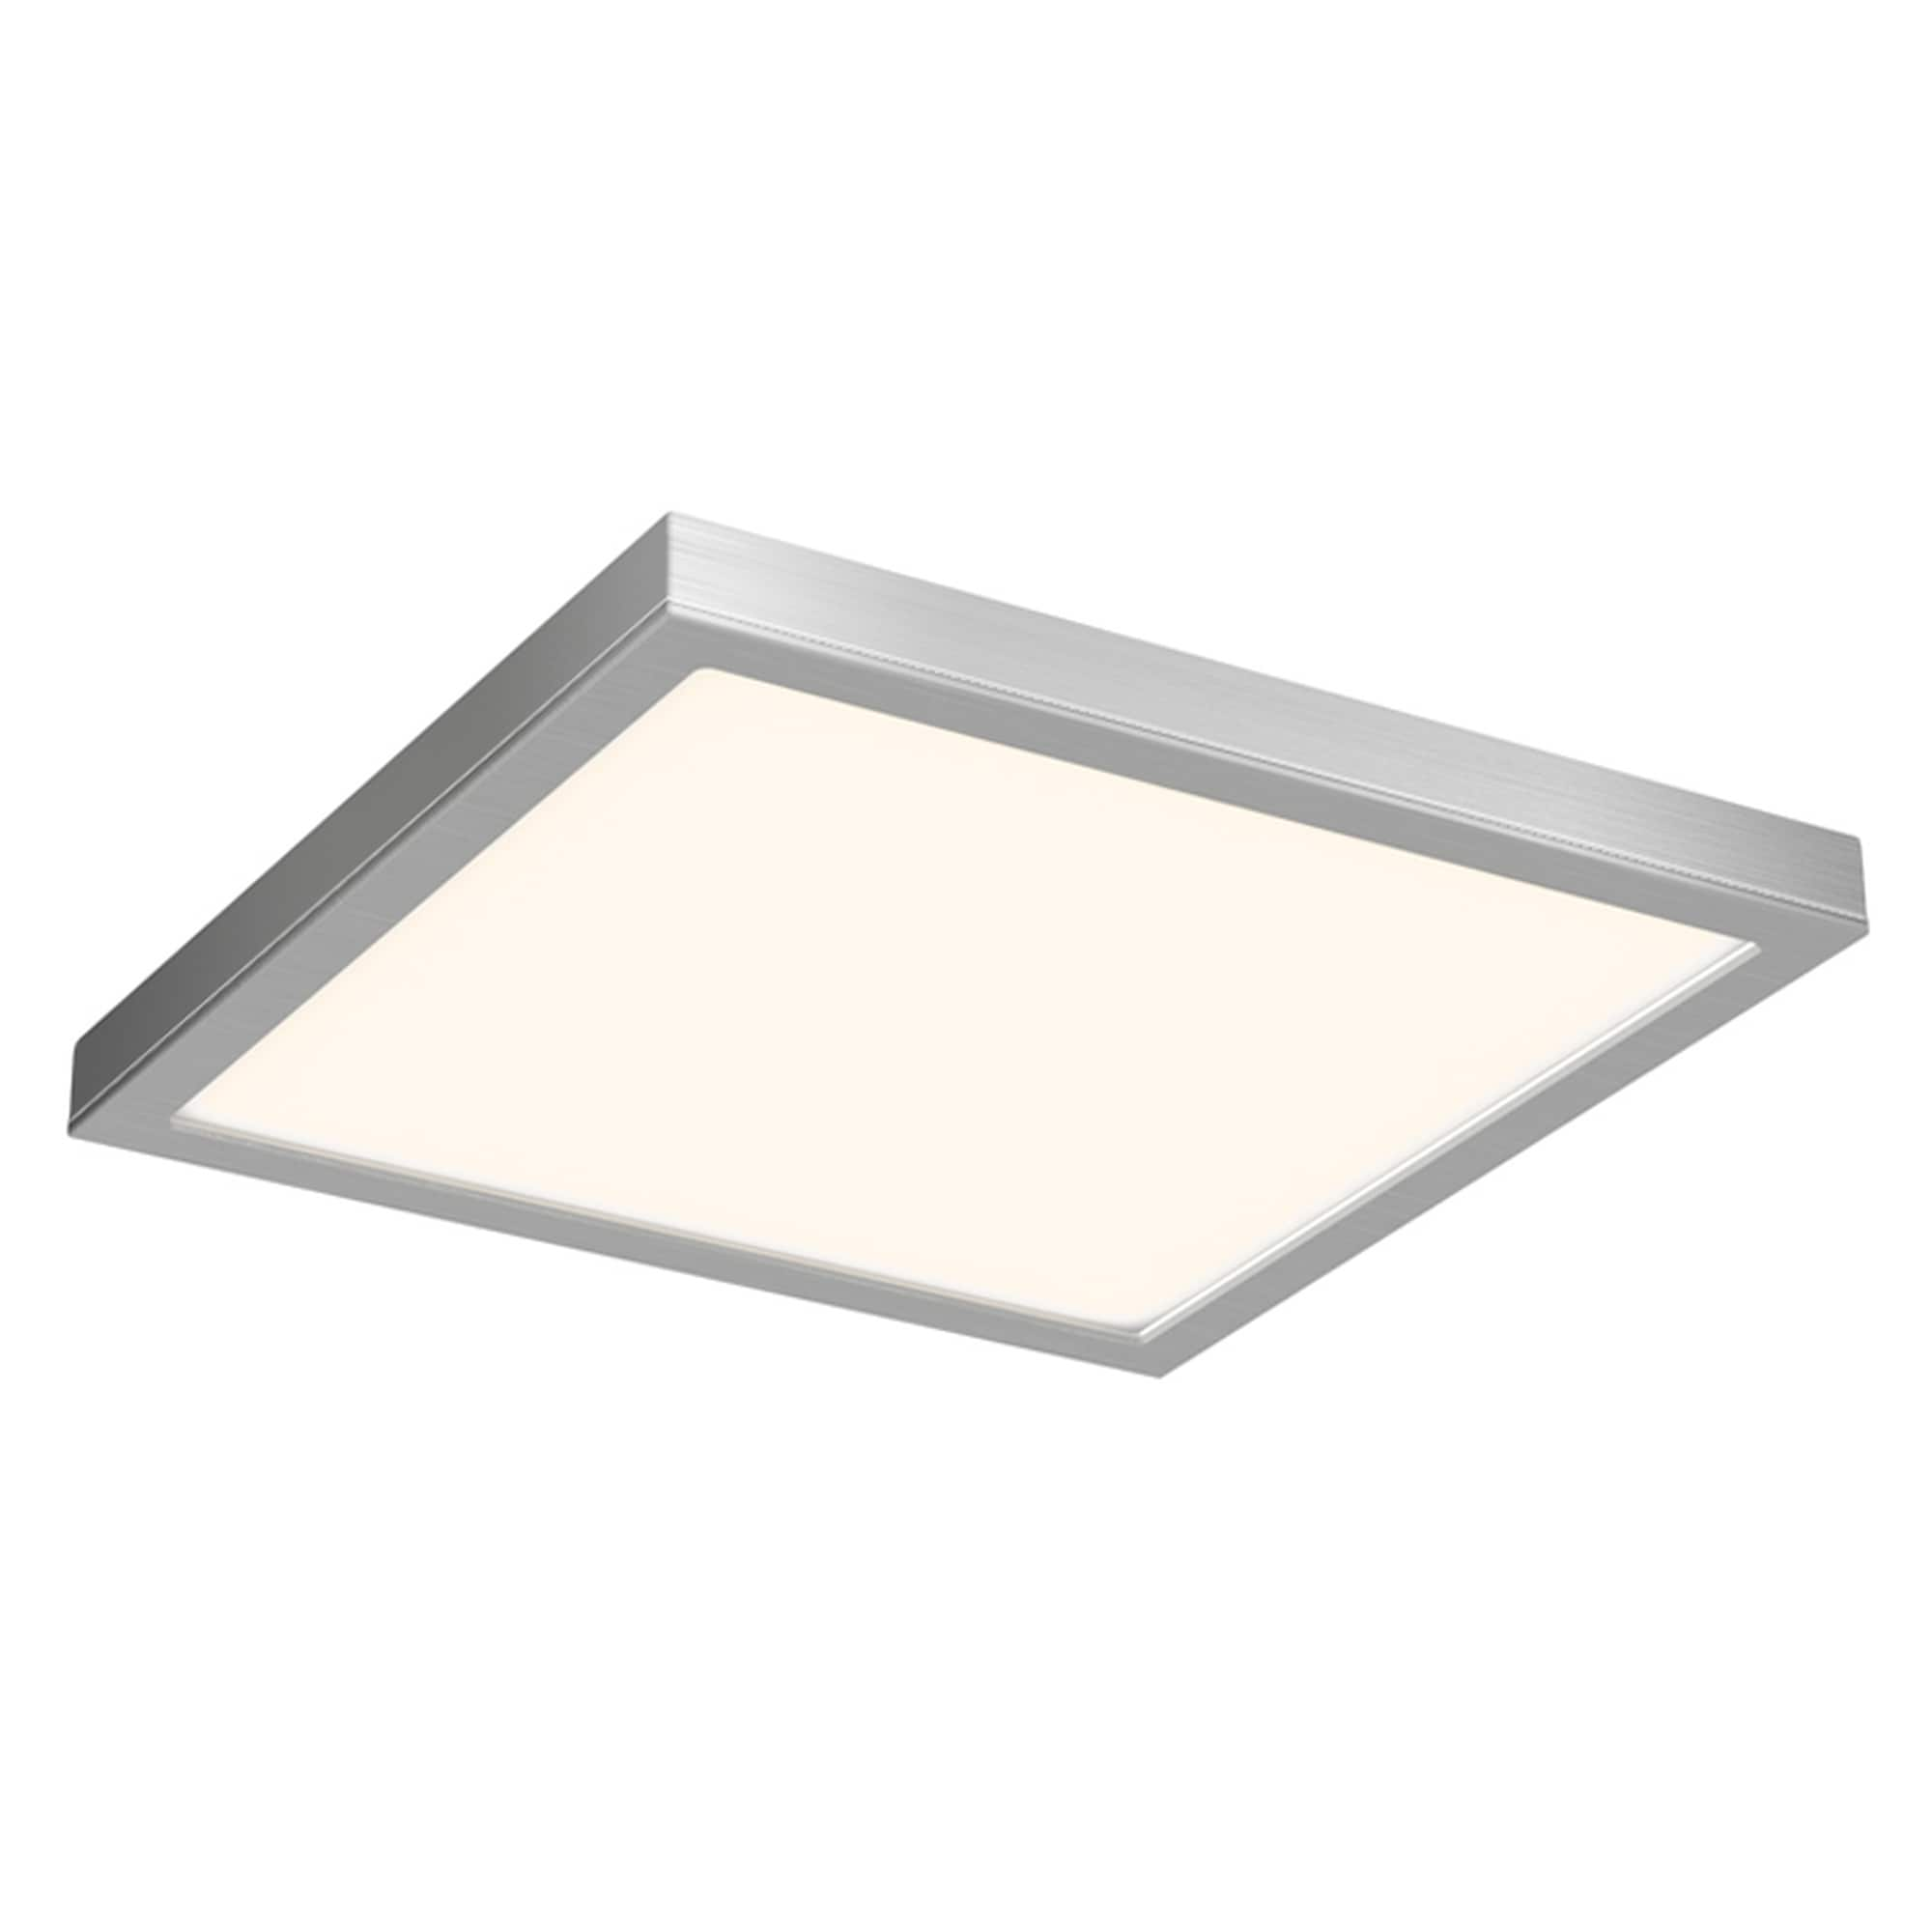 serene large light full lights decoration cei planar contemporary of wells sabina flush as ideas mount led ceiling size fixtures square ceilings bathroom astro archived master cover bedroom diverting